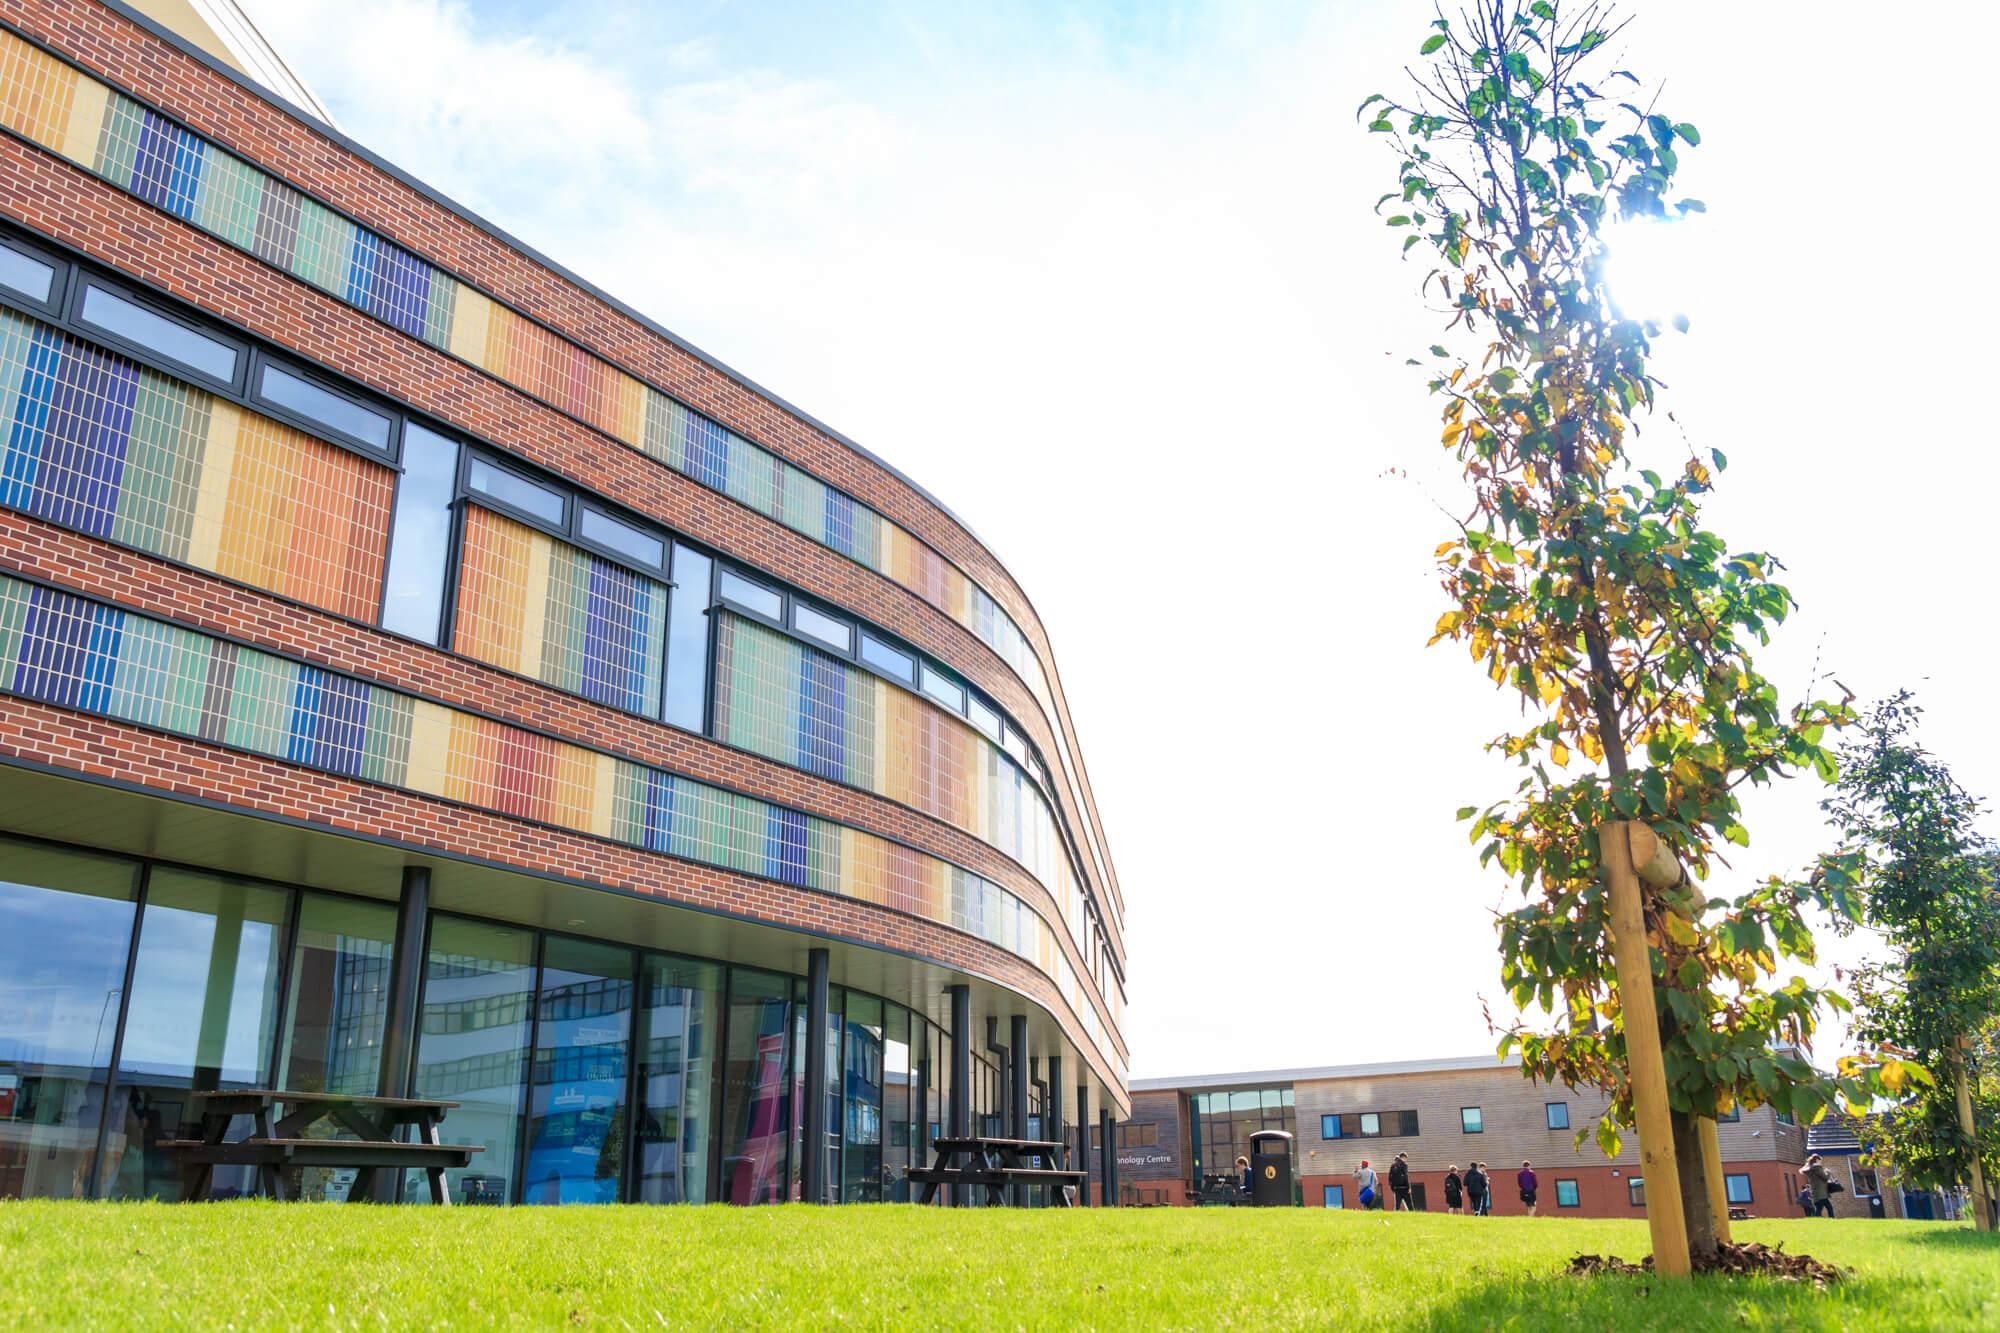 Outside view of Loughborough College